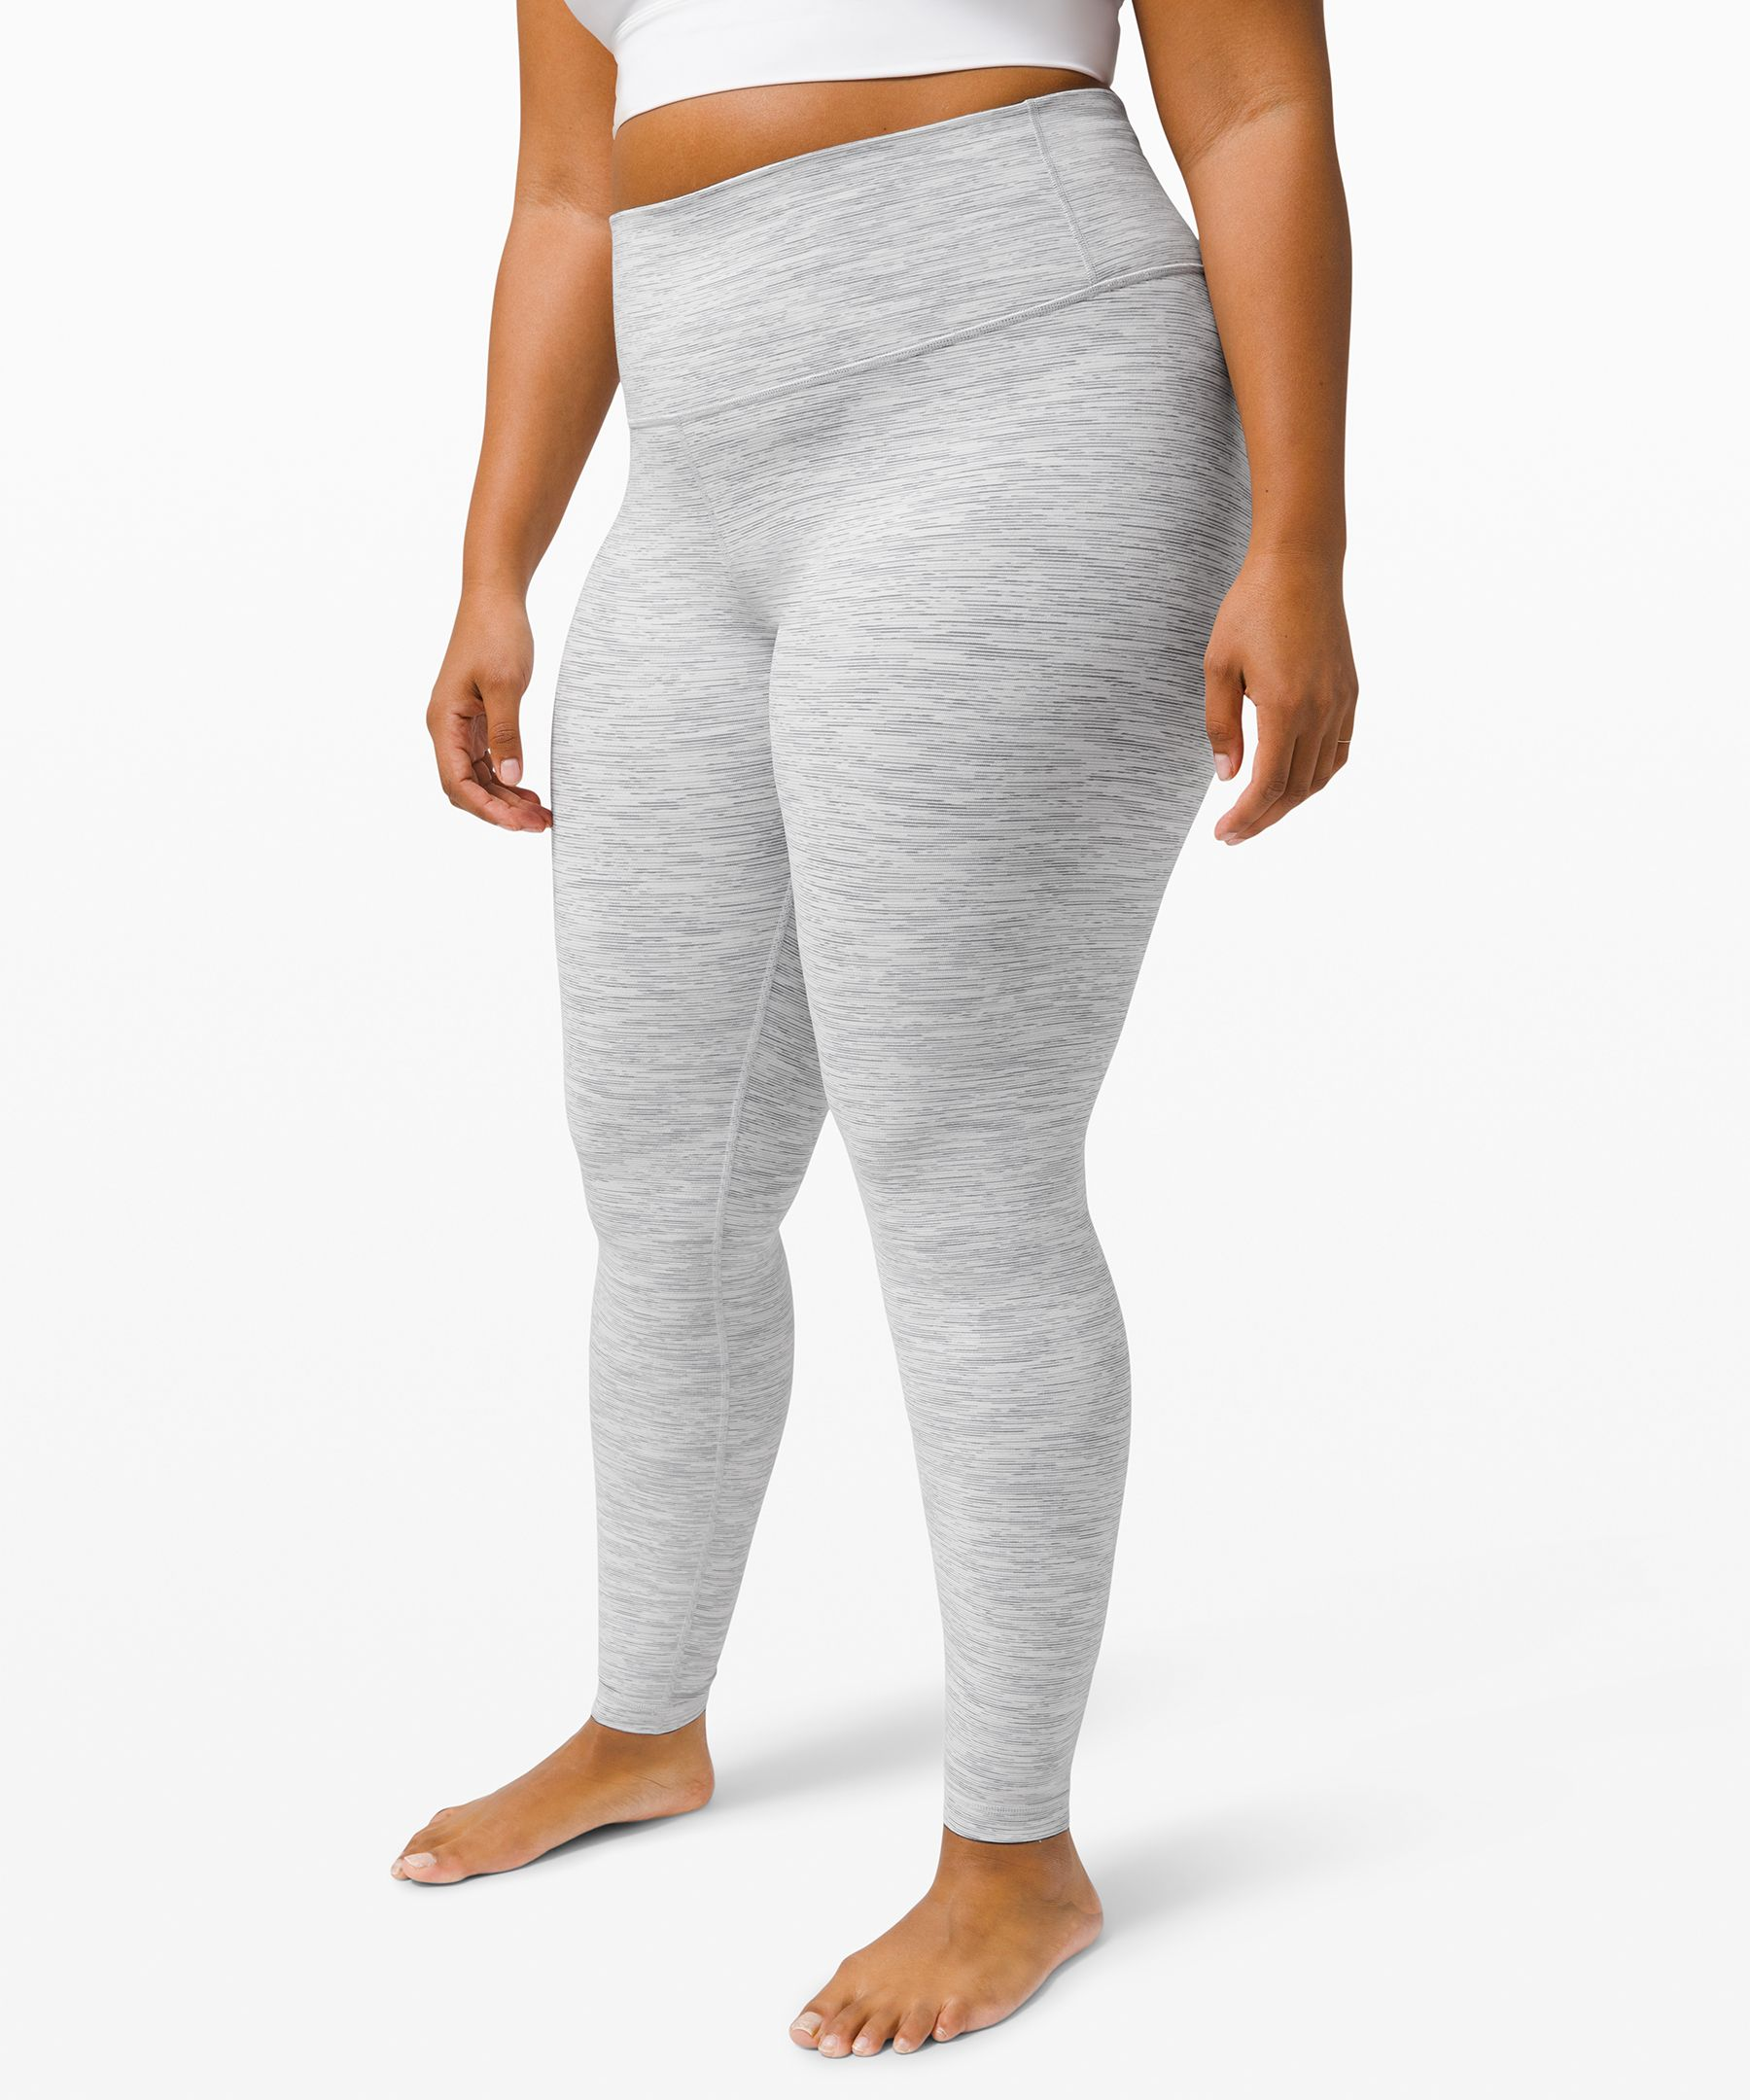 Train, flow, and chill in the  versatile Wunder Under  collection. Minimal seaming, a  wide waistband, and  performance fabric make these  tights a sweaty staple.